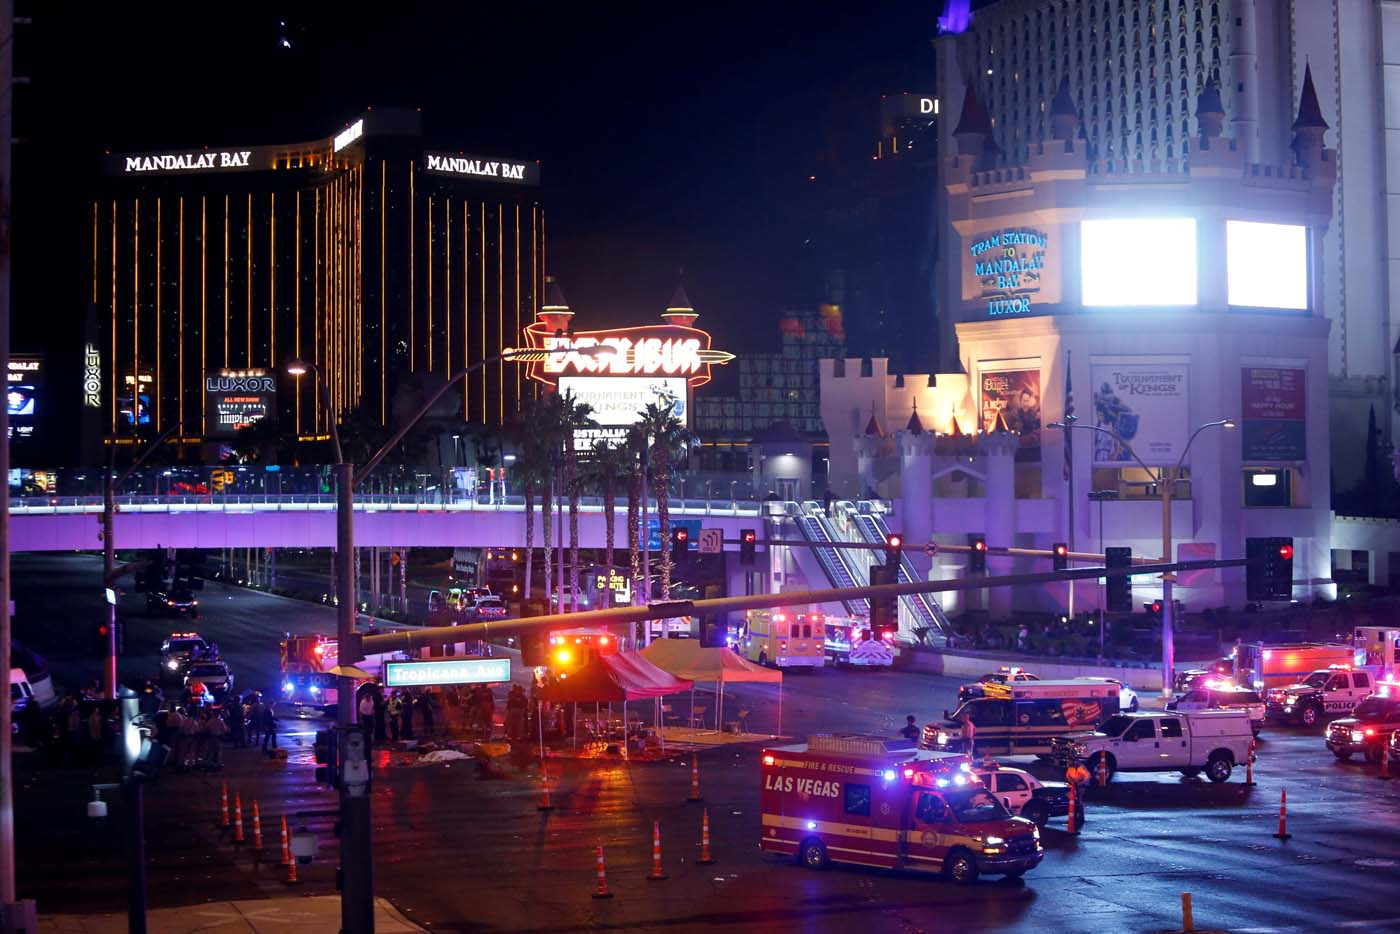 Las Vegas Metro Police and medical workers stage in the intersection of Tropicana Avenue and Las Vegas Boulevard South after a mass shooting at a music festival on the Las Vegas Strip in Las Vegas, Nevada, U.S. October 1, 2017. REUTERS/Las Vegas Sun/Steve Marcus TPX IMAGES OF THE DAY